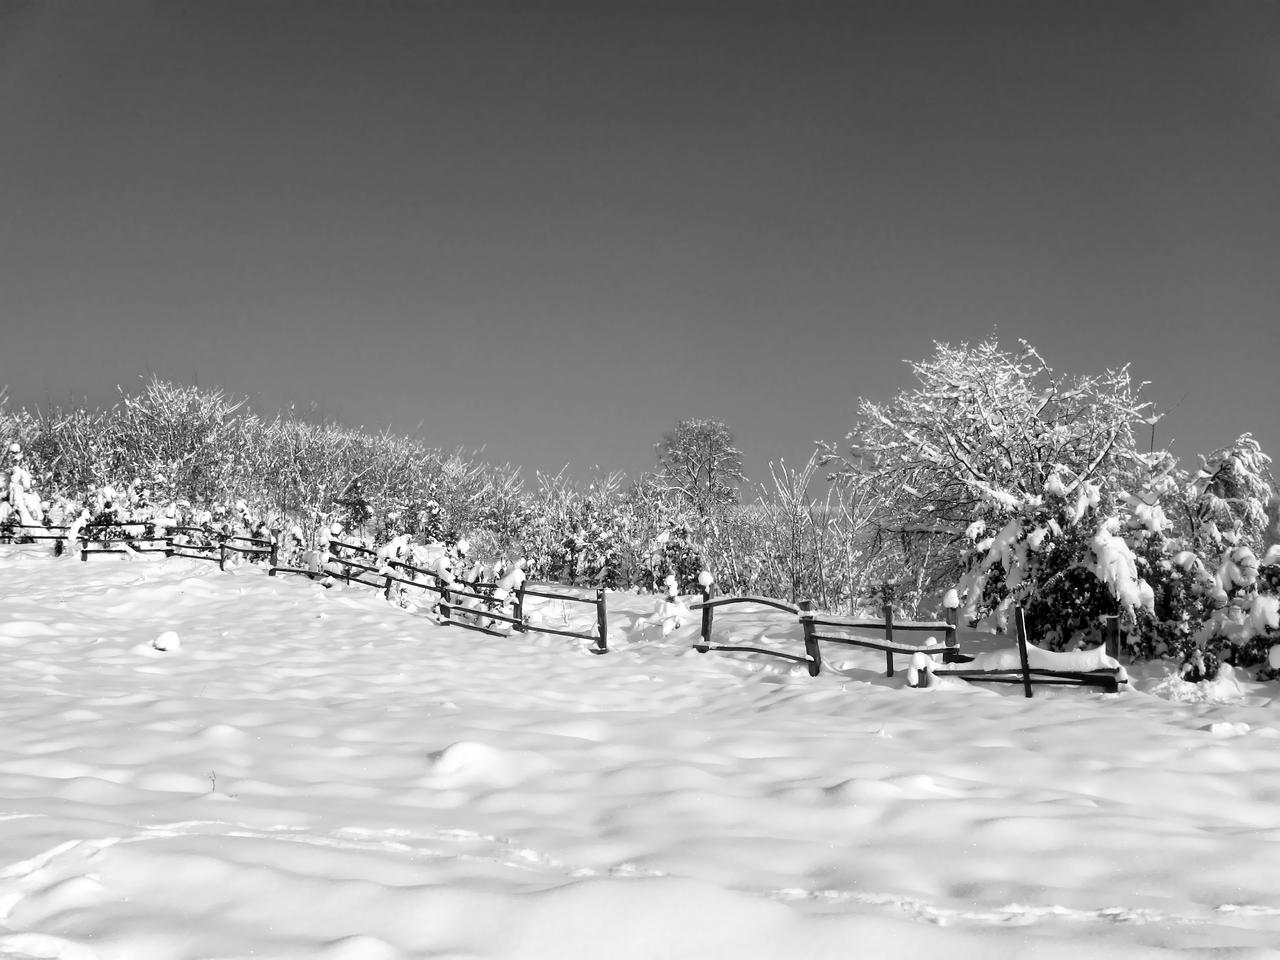 winter in black and white by DifferentWorld13 on DeviantArt